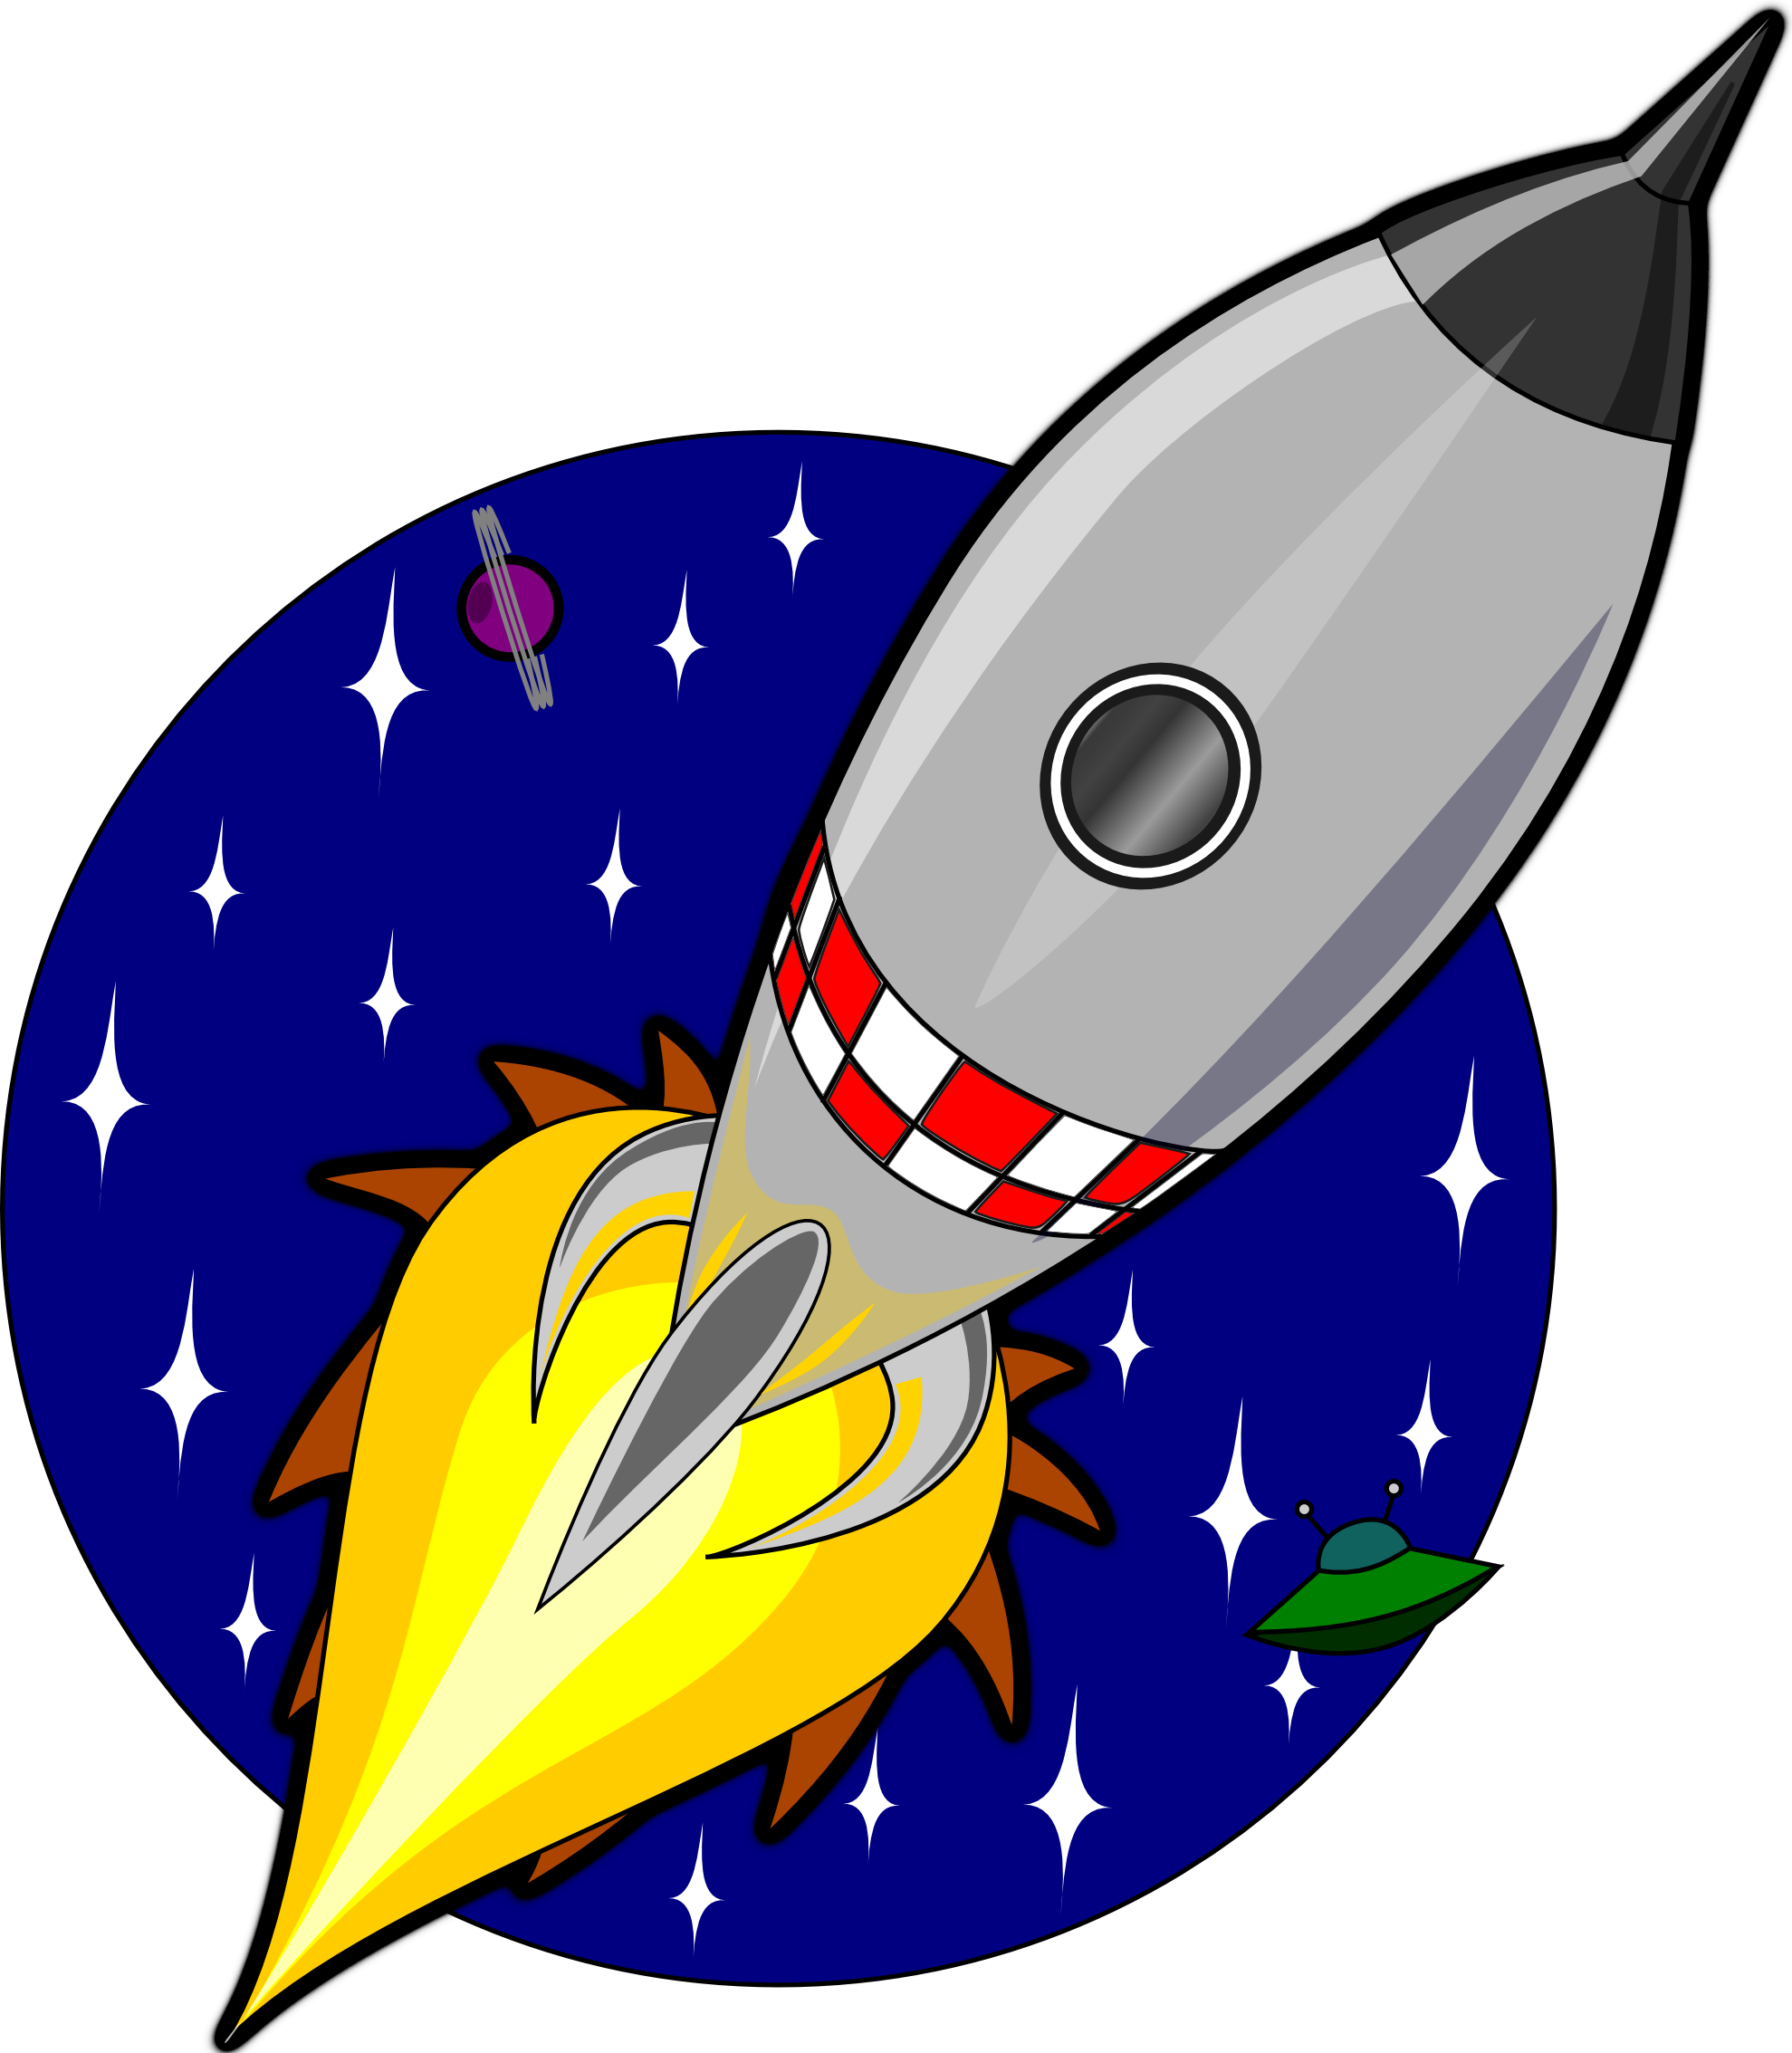 Rocket clipart Cliparting art cliparts inspiration Rocket